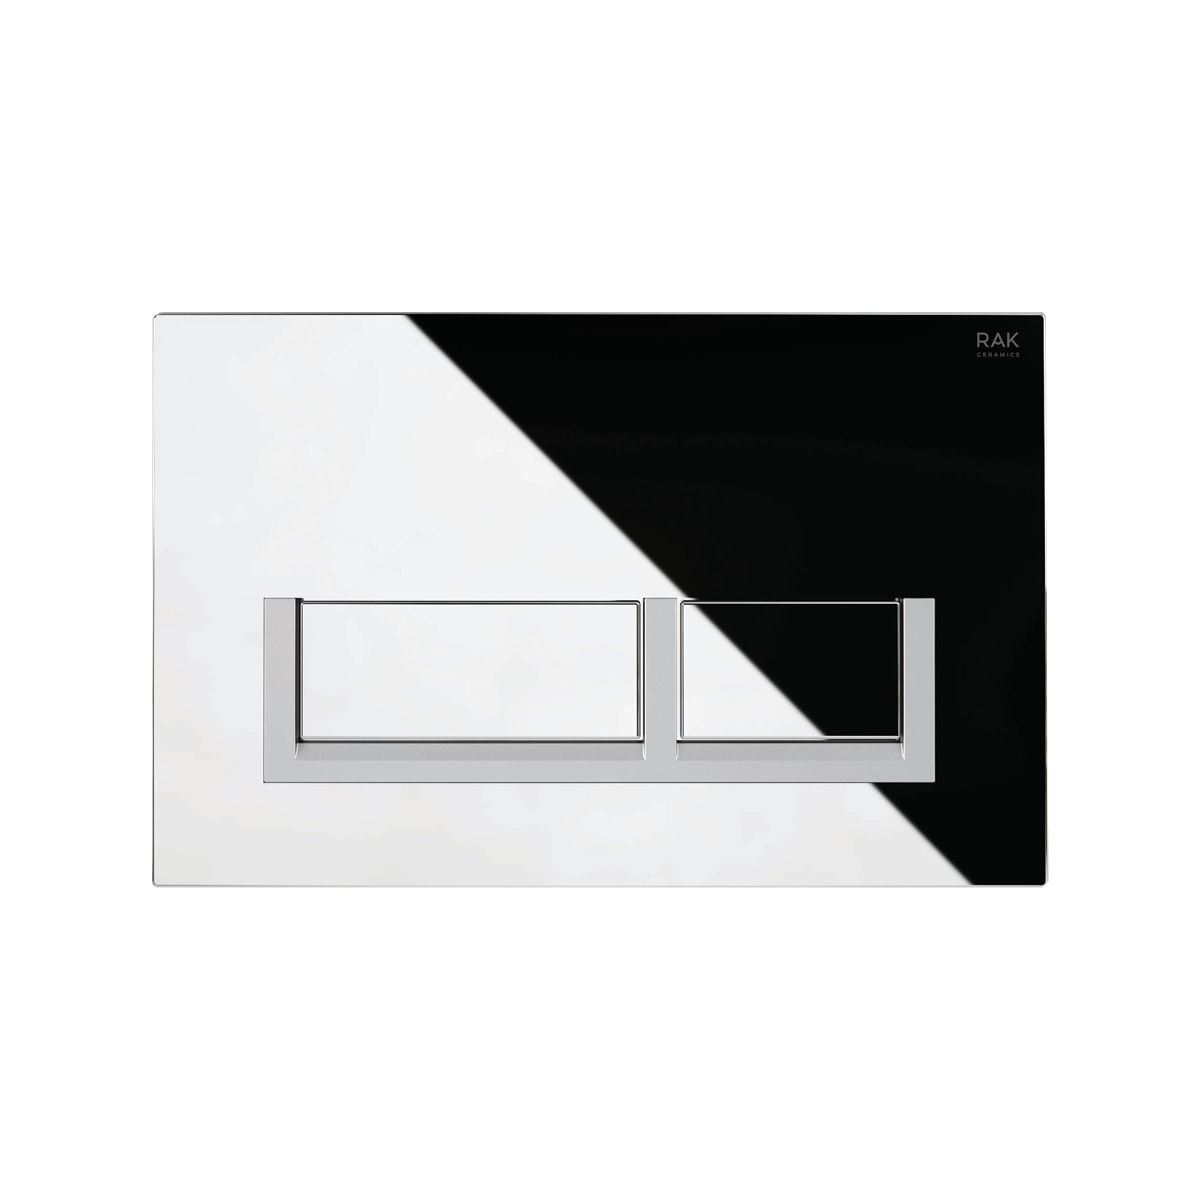 RAK Ecofix Chrome Flush Plate with Surrounded Rectangular Push Buttons